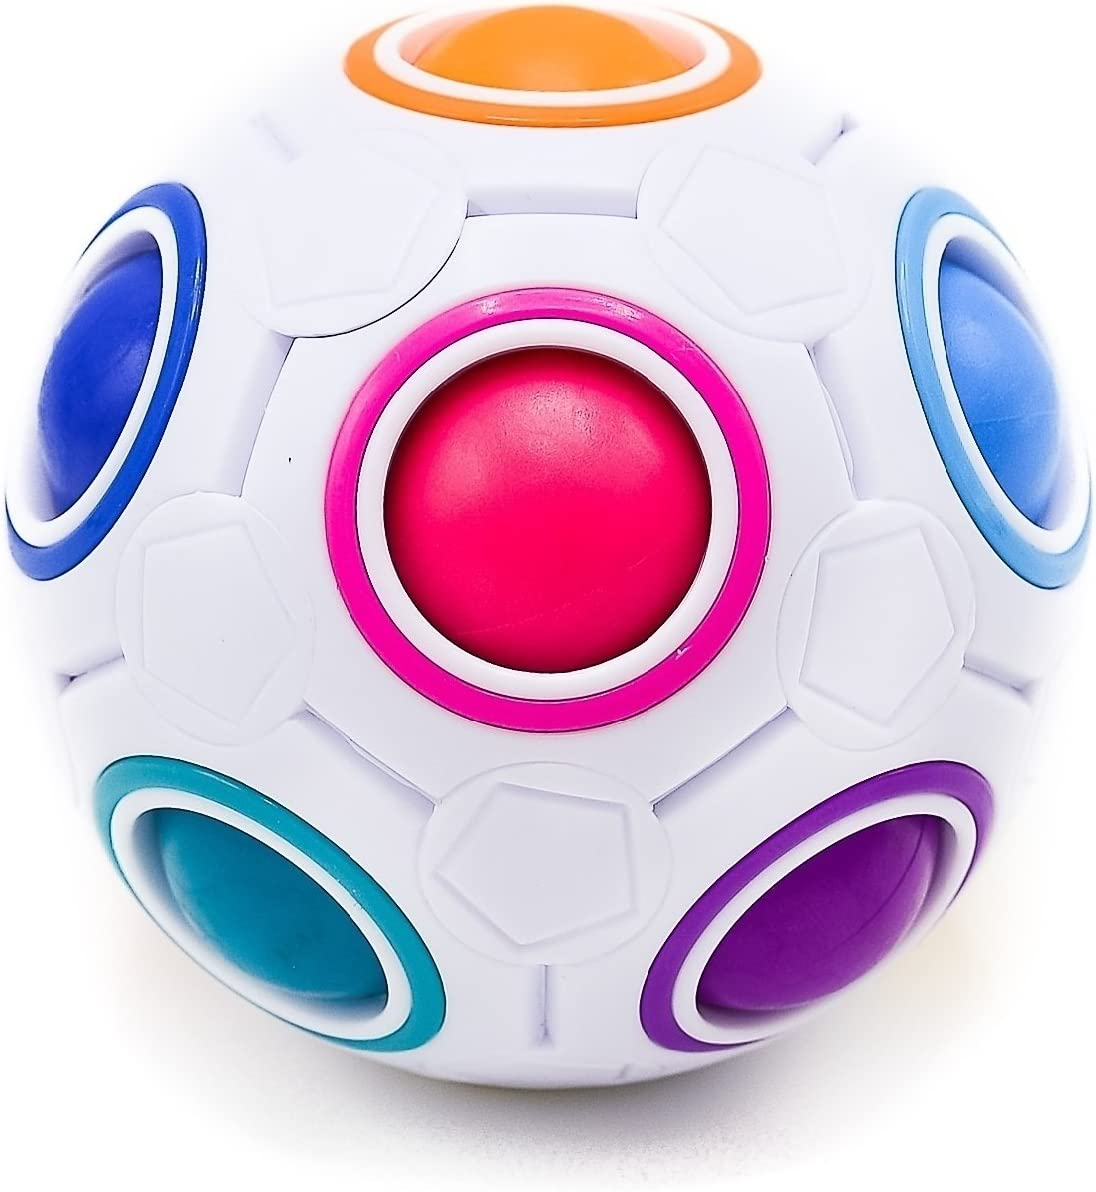 Toyzabo Challenging Puzzle Speed Cube Ball, Matching Colors Game, Fun Fidget Toy Brain Teaser with 11 Rainbow Colors